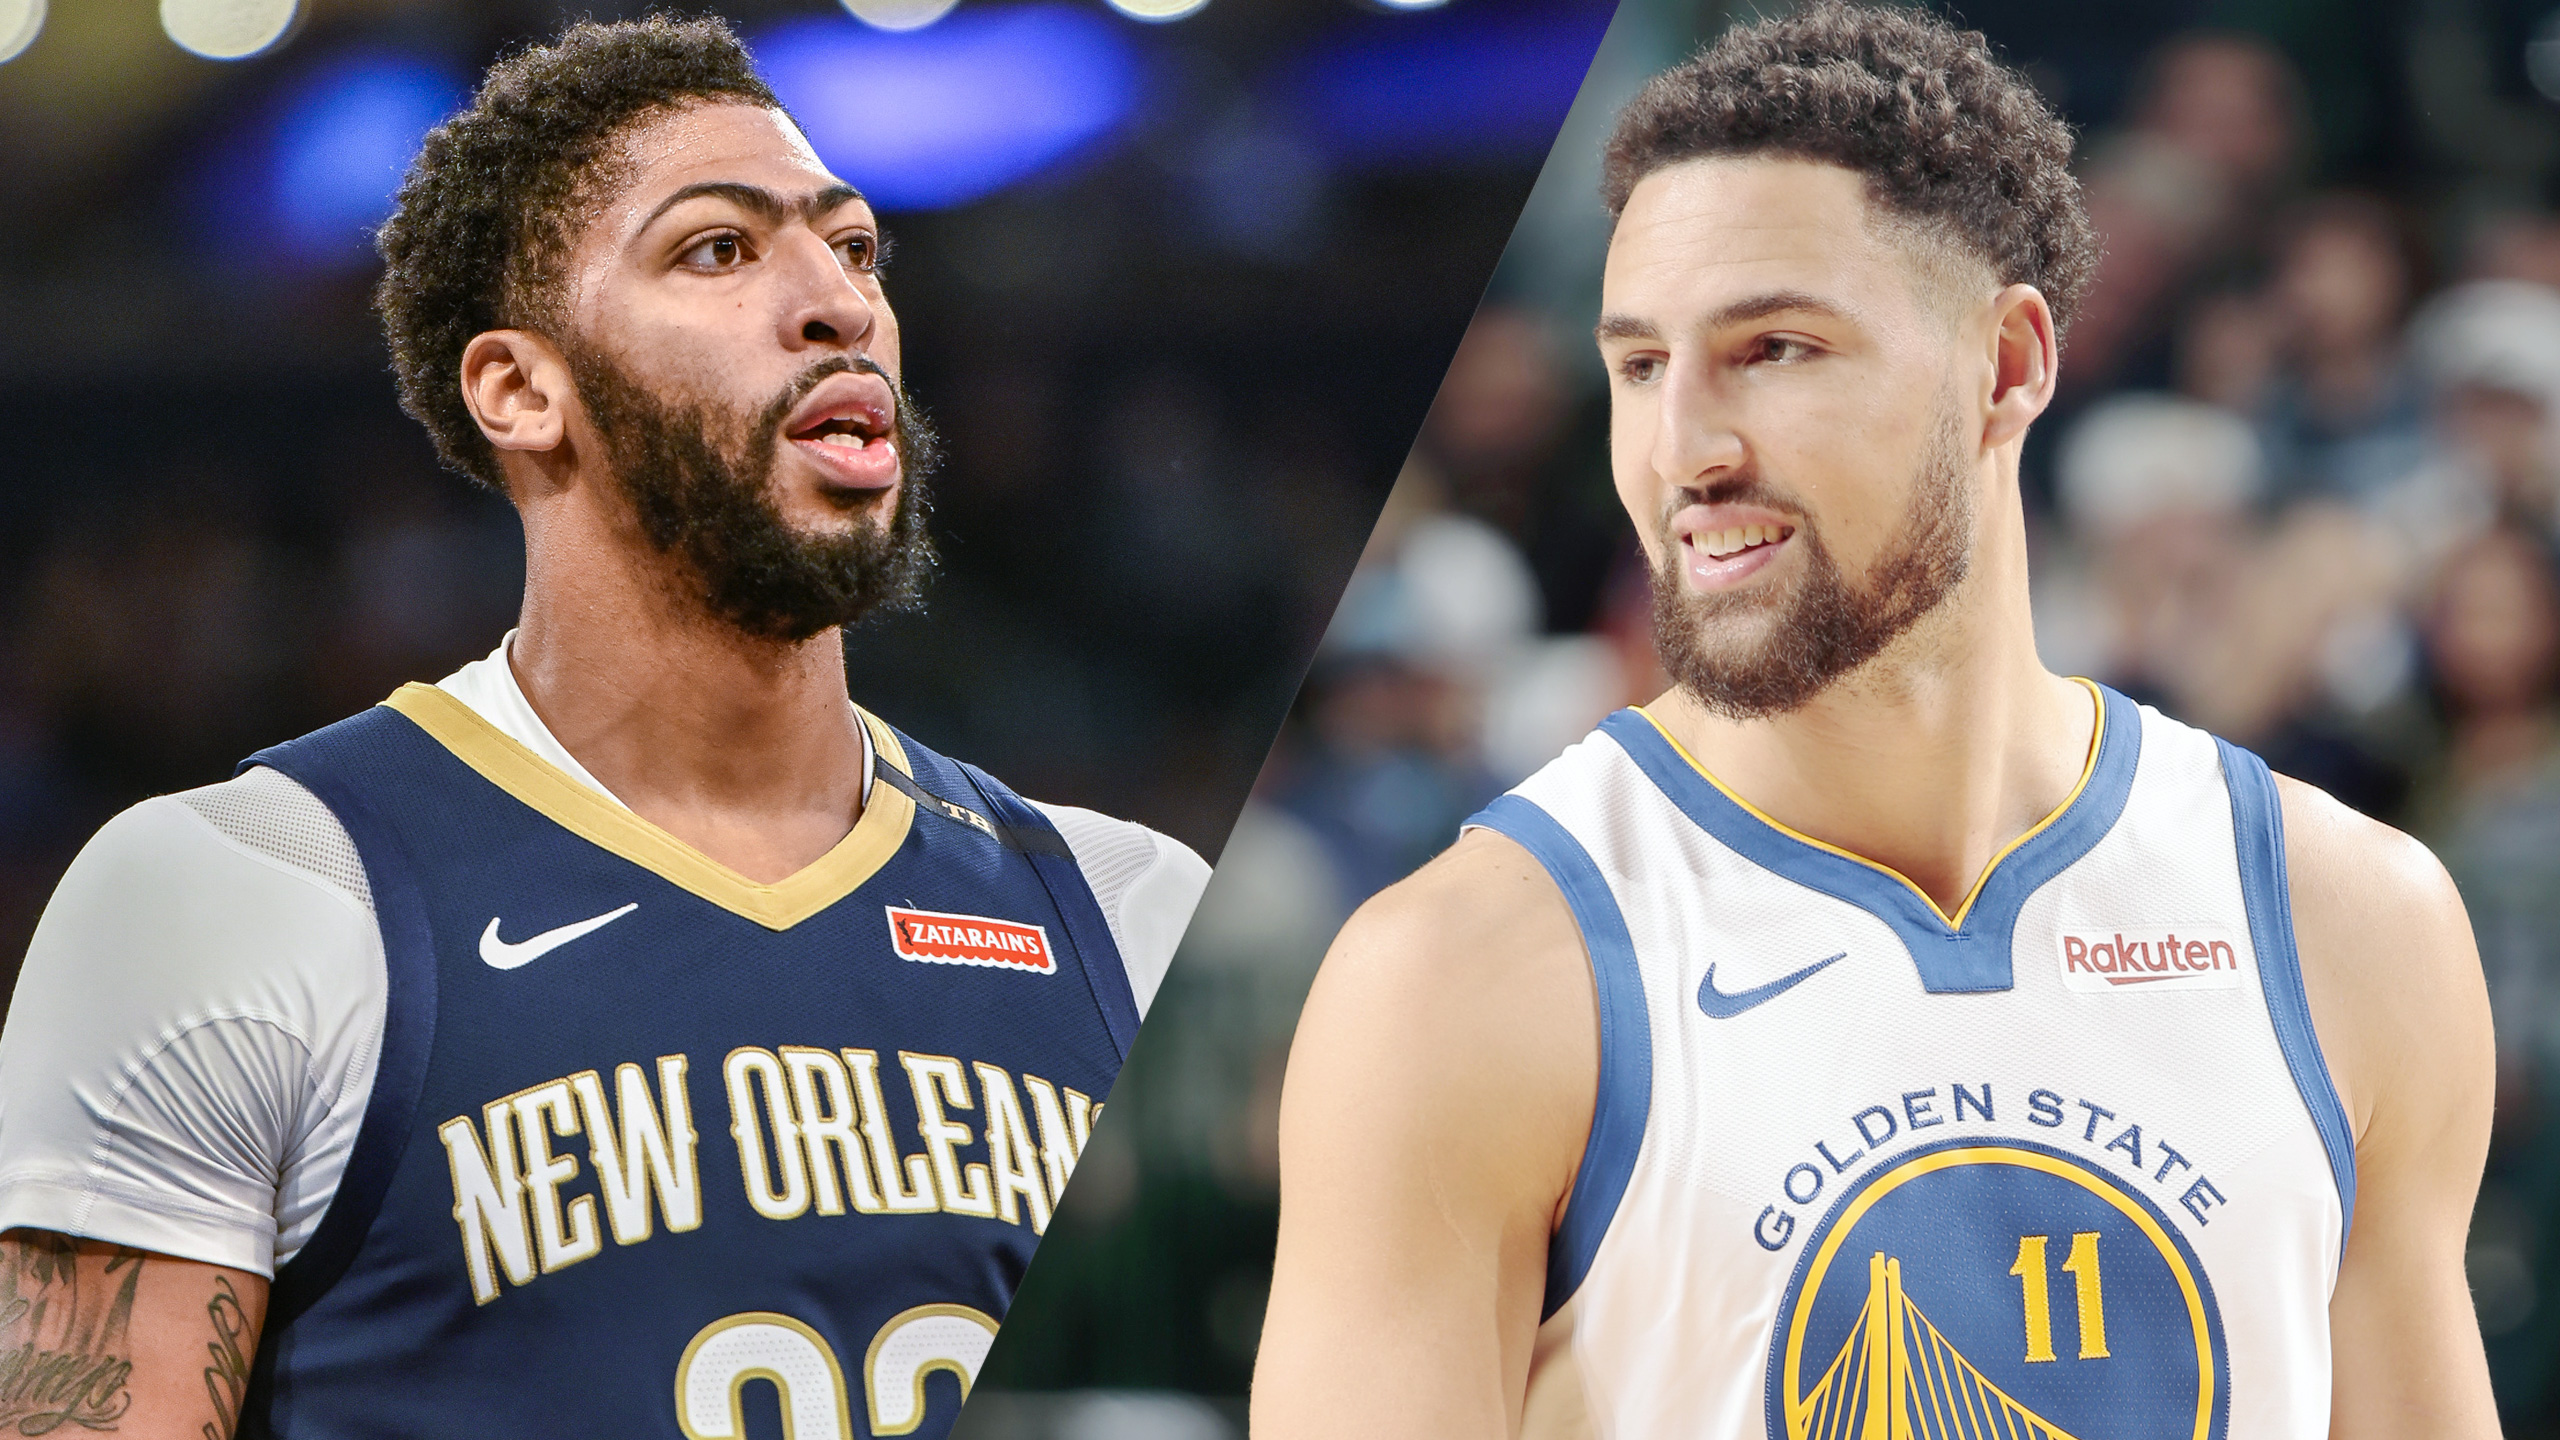 In Spanish - New Orleans Pelicans vs. Golden State Warriors